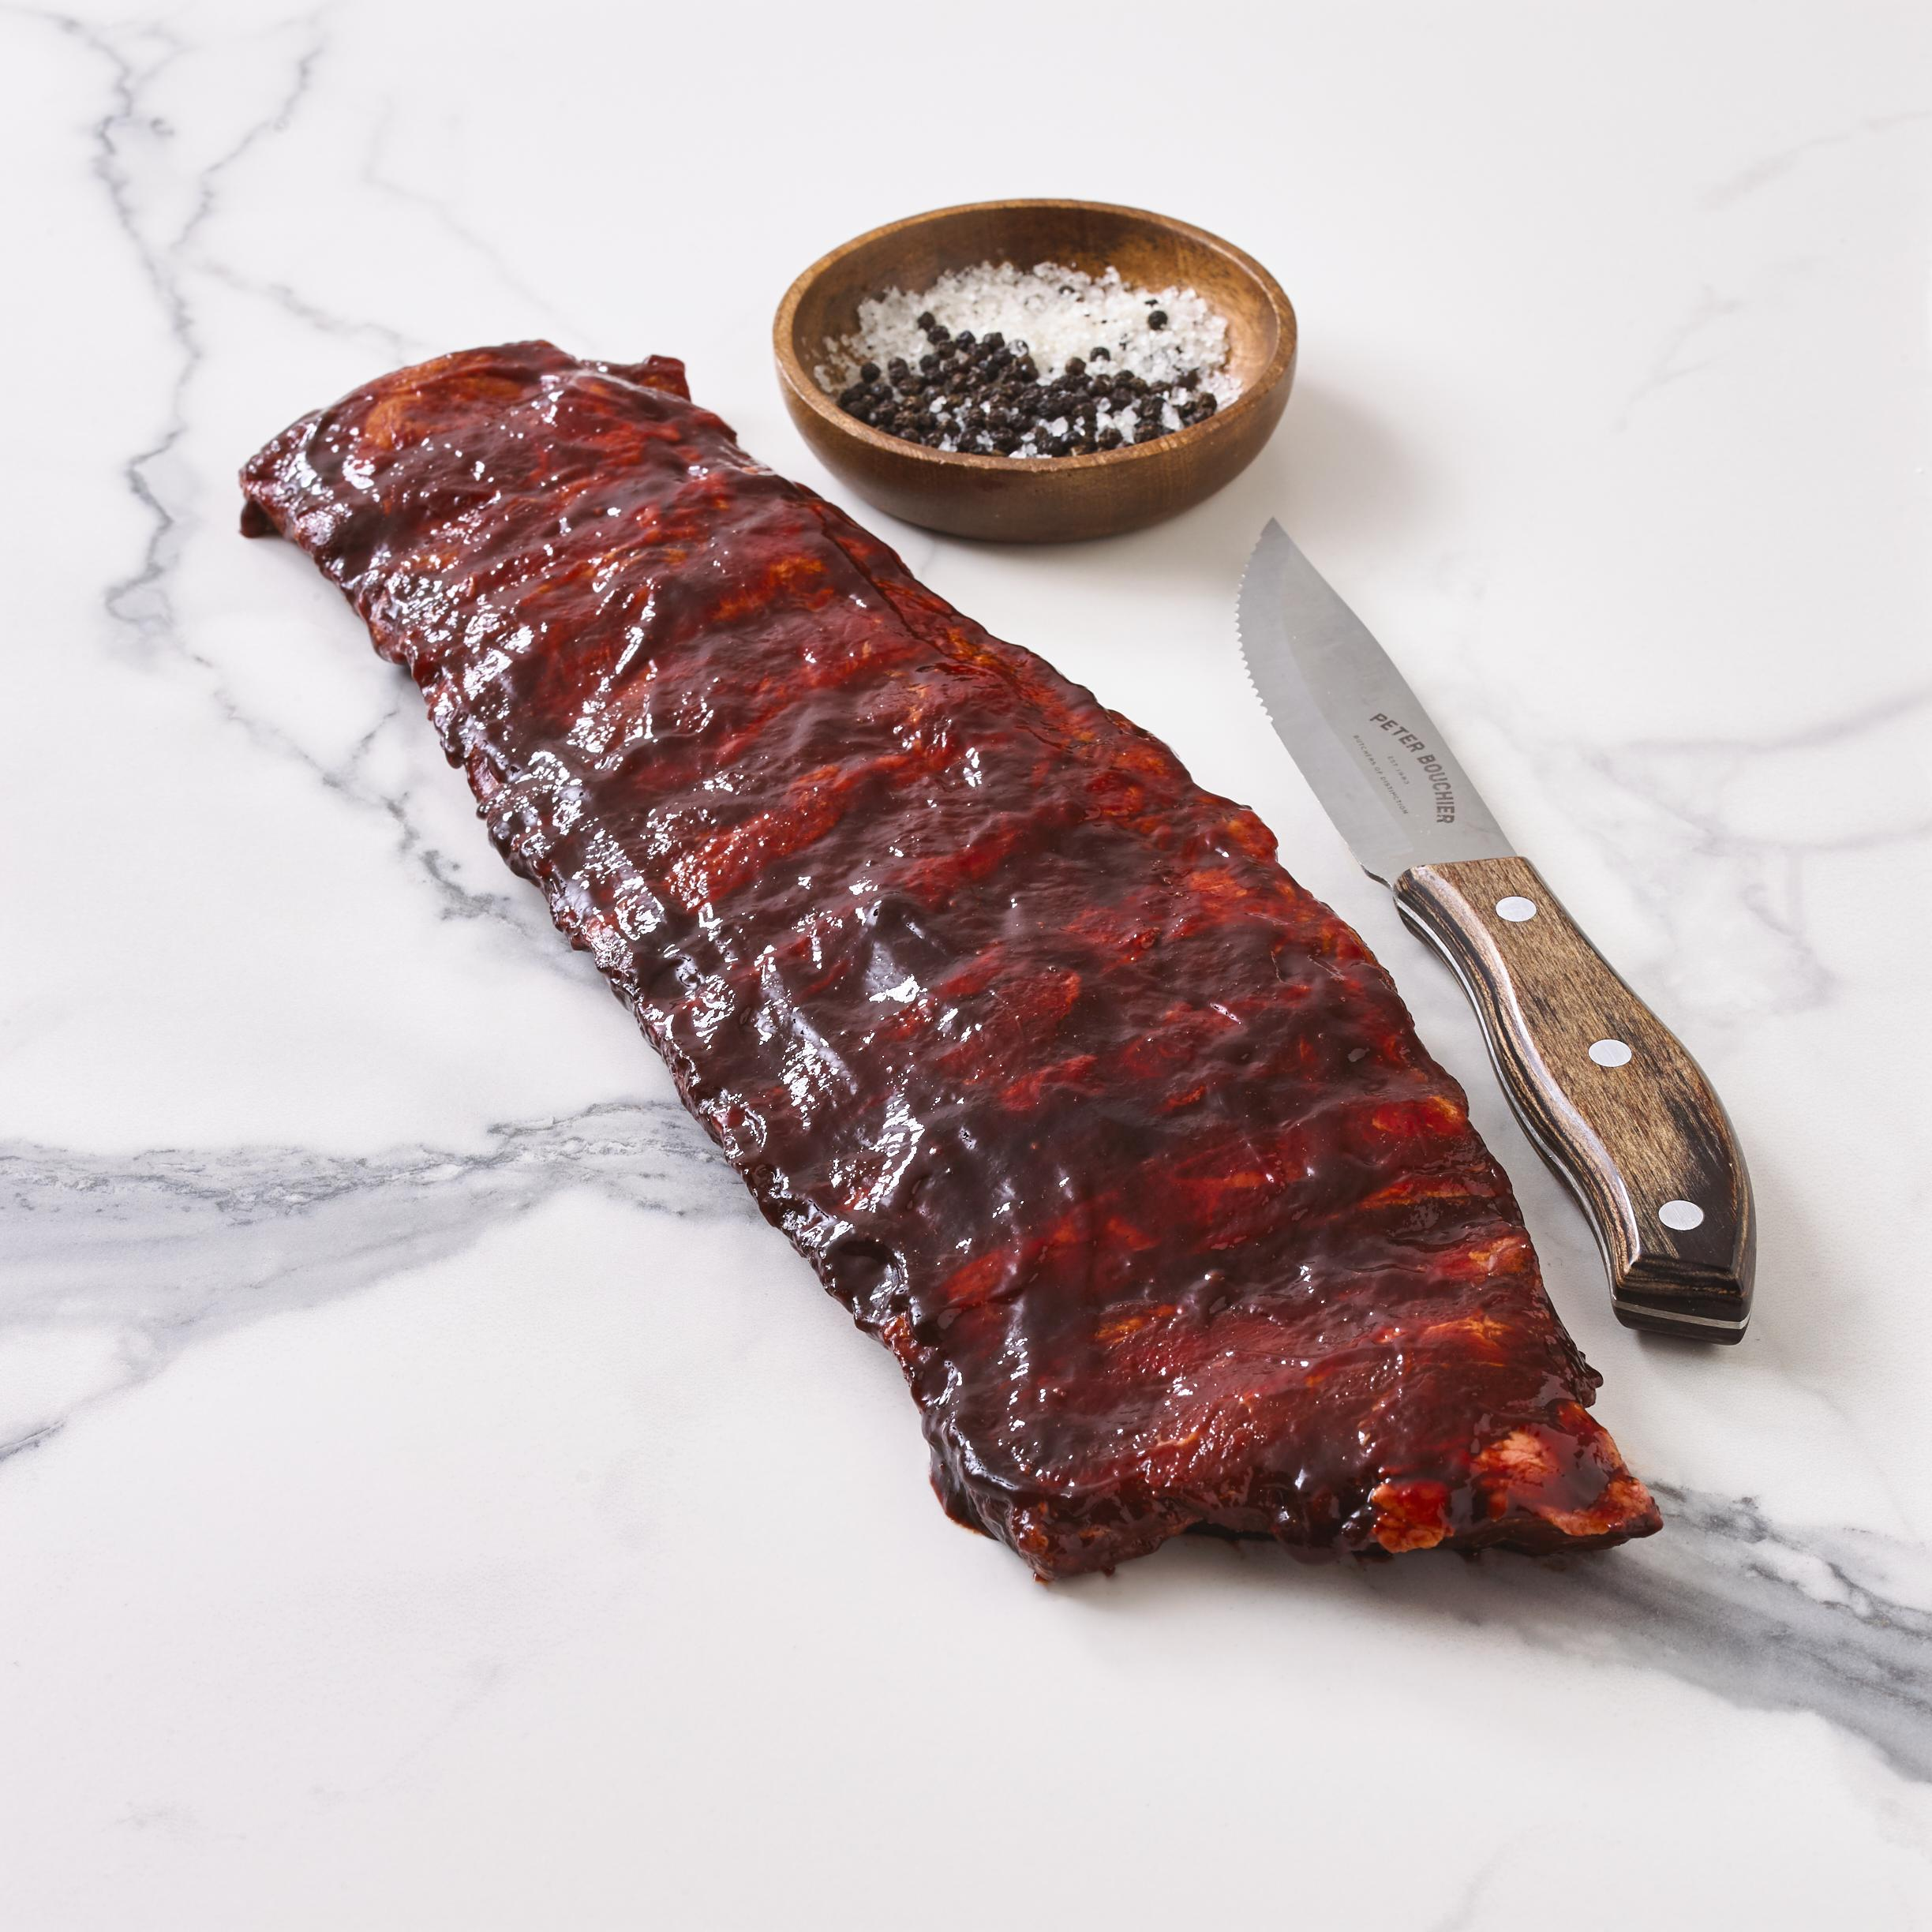 Free Range Pork USA Barbecue Ribs